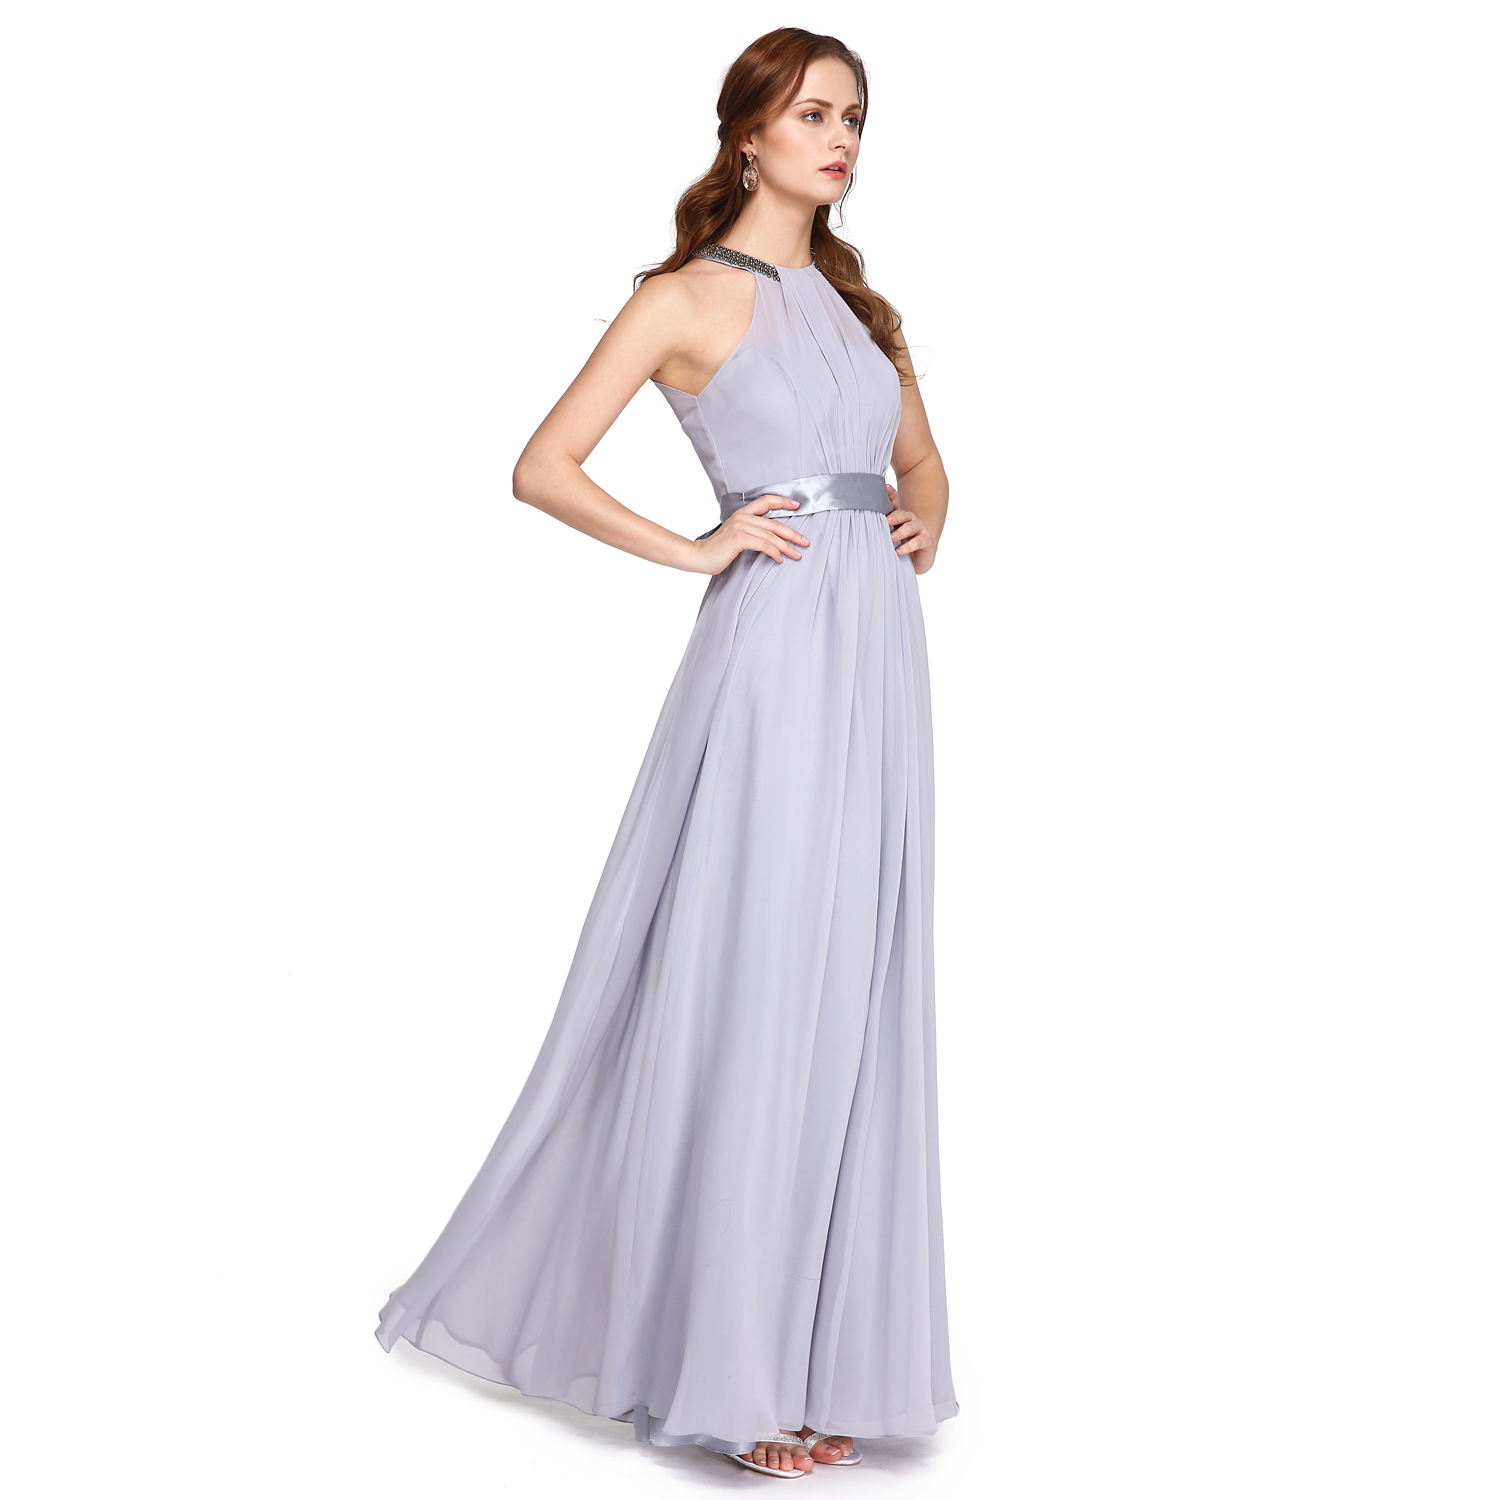 Couture Evening Gowns And Dresses: TS Couture A Line High Neck Ankle Length Charmeuse Prom